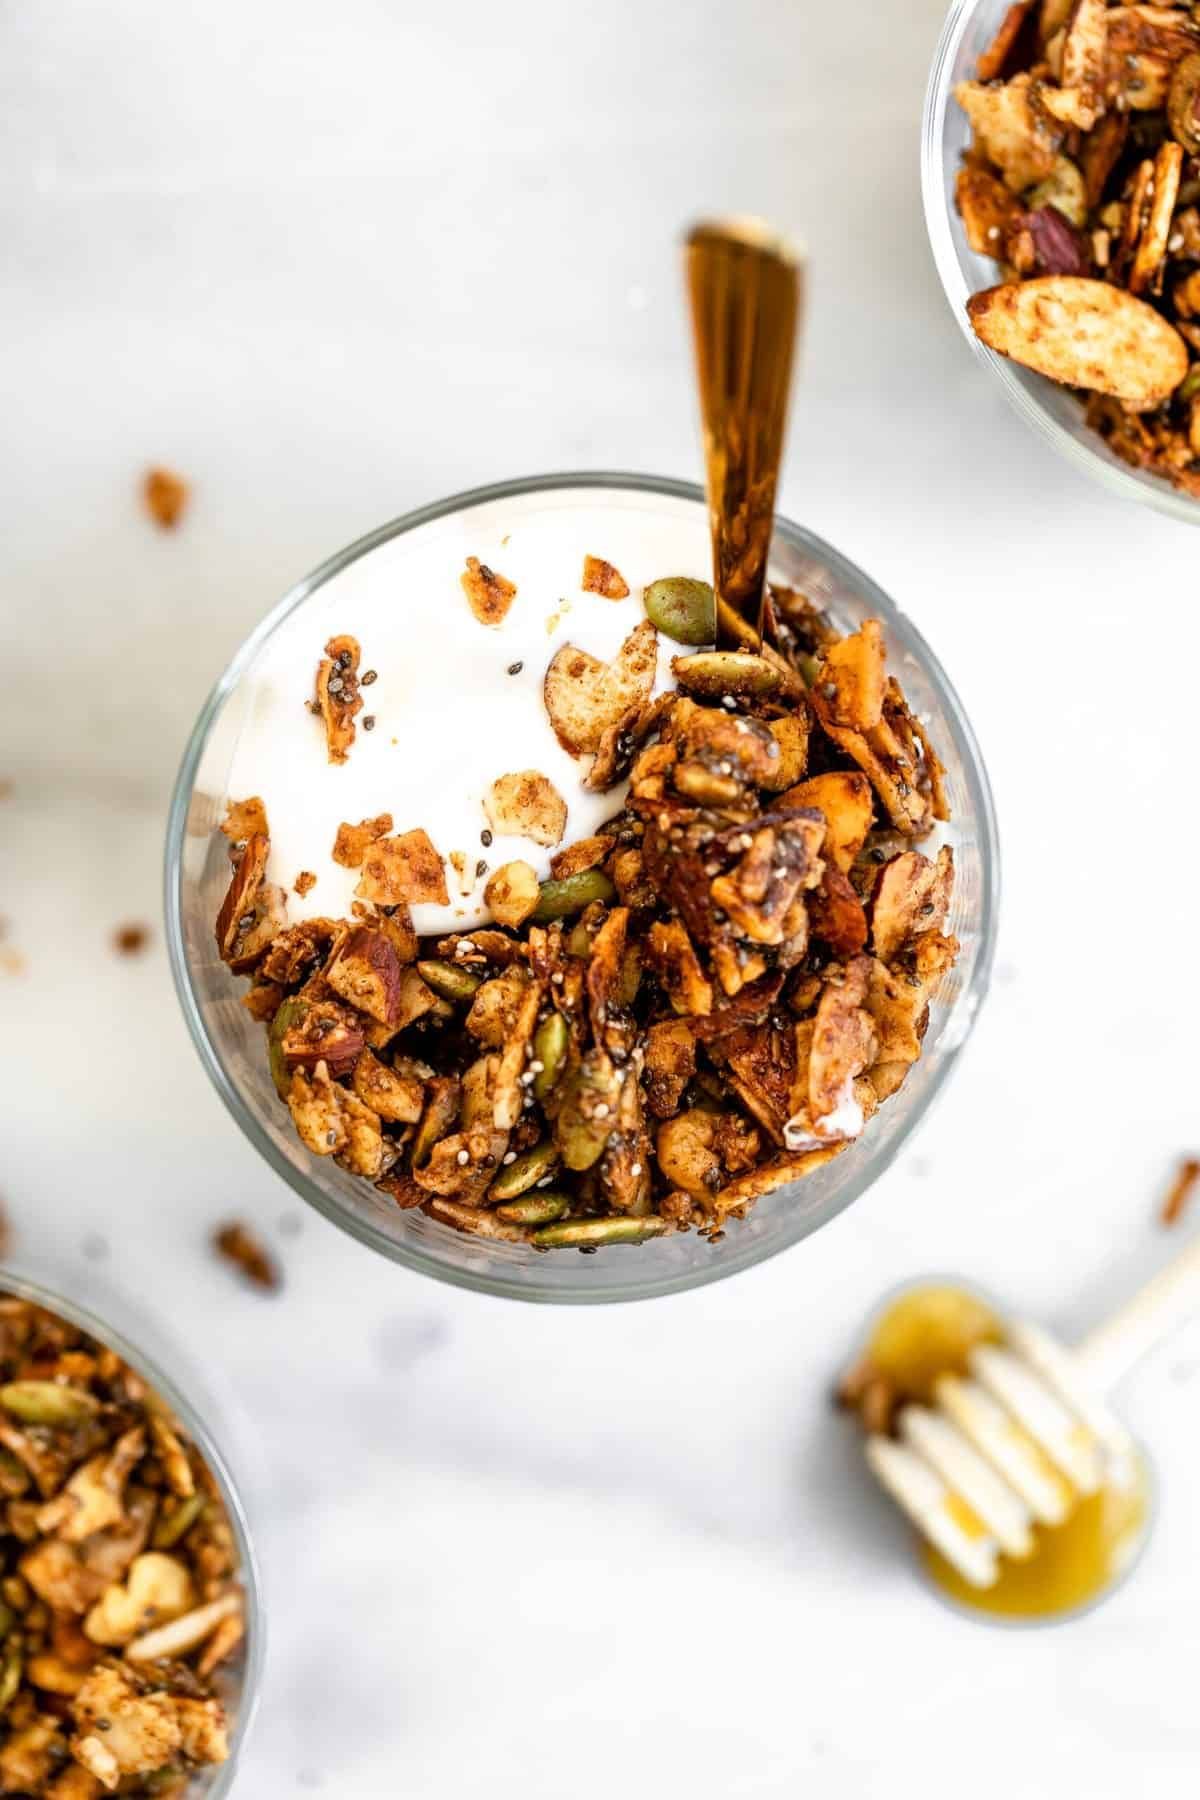 Paleo granola with honey on top in a small bowl.